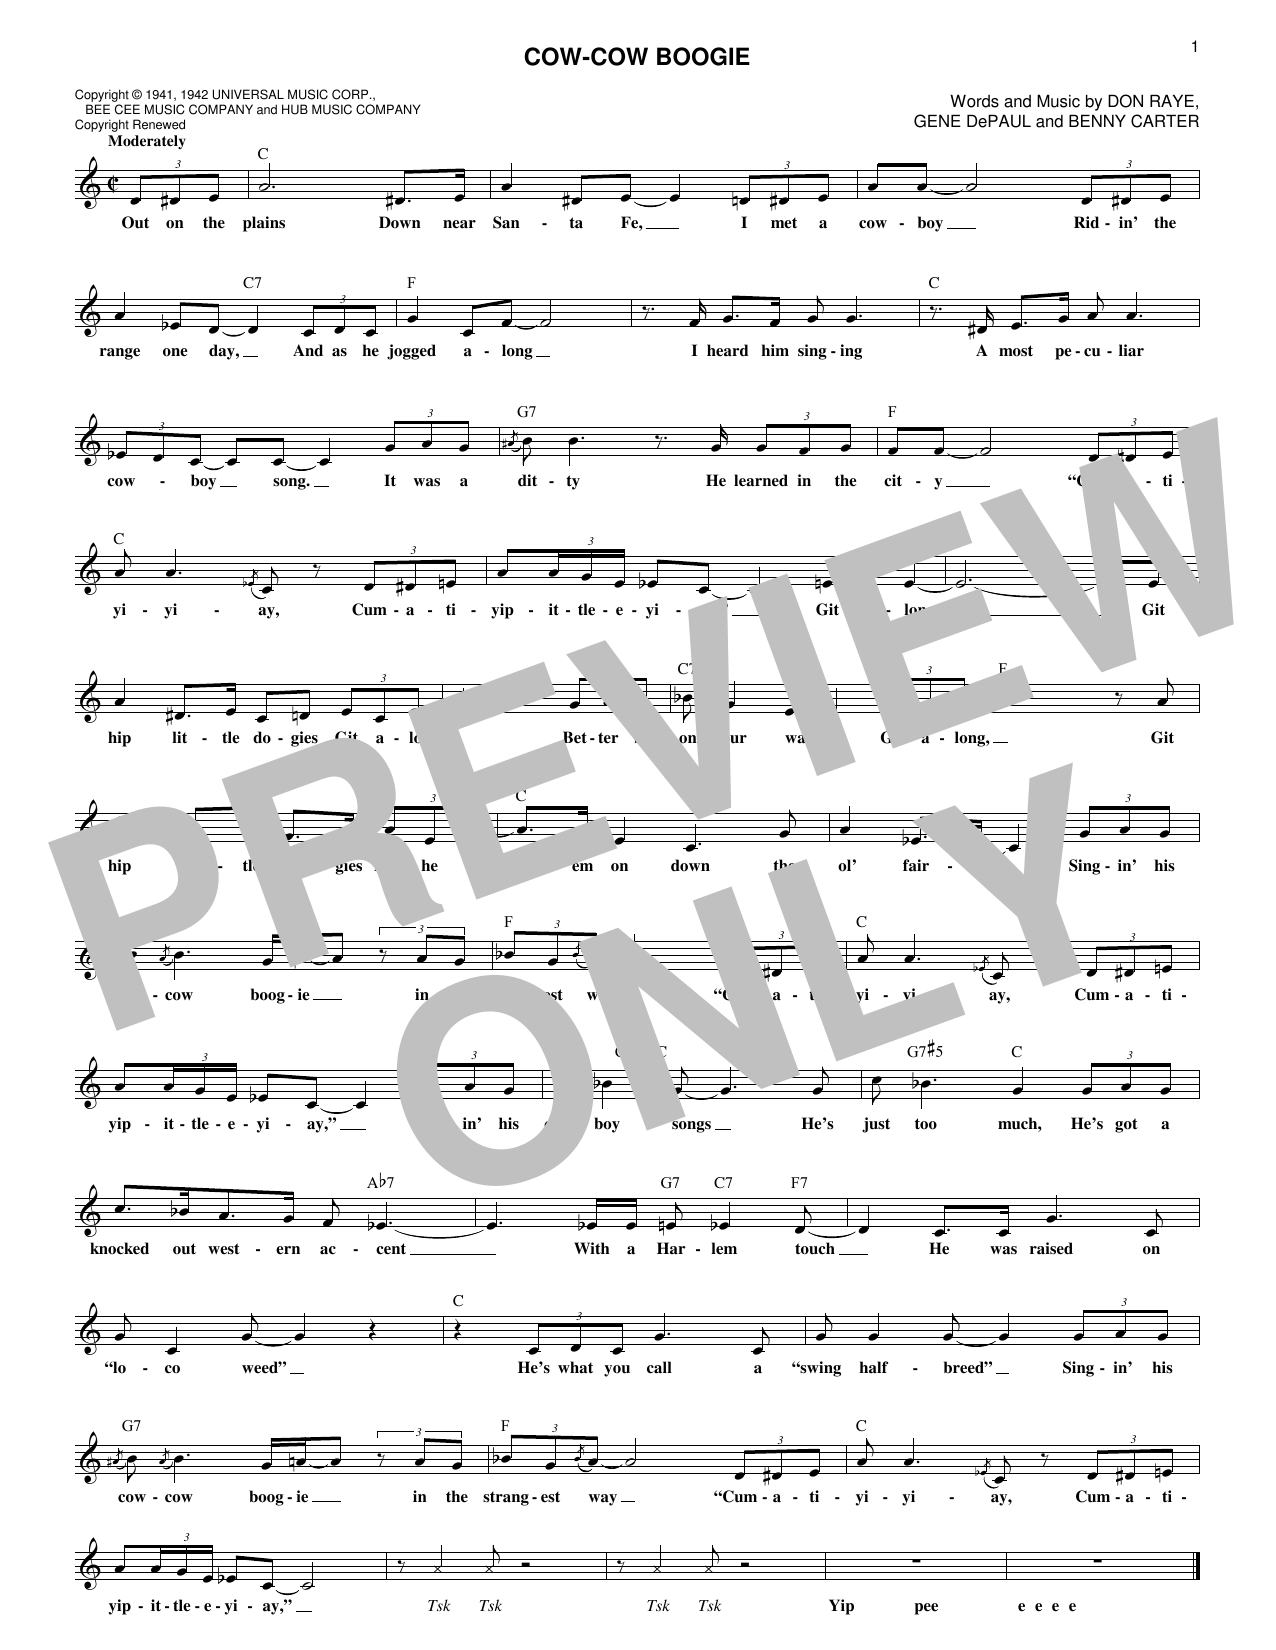 Freddie Slack & His Orchestra Cow-Cow Boogie sheet music notes and chords. Download Printable PDF.